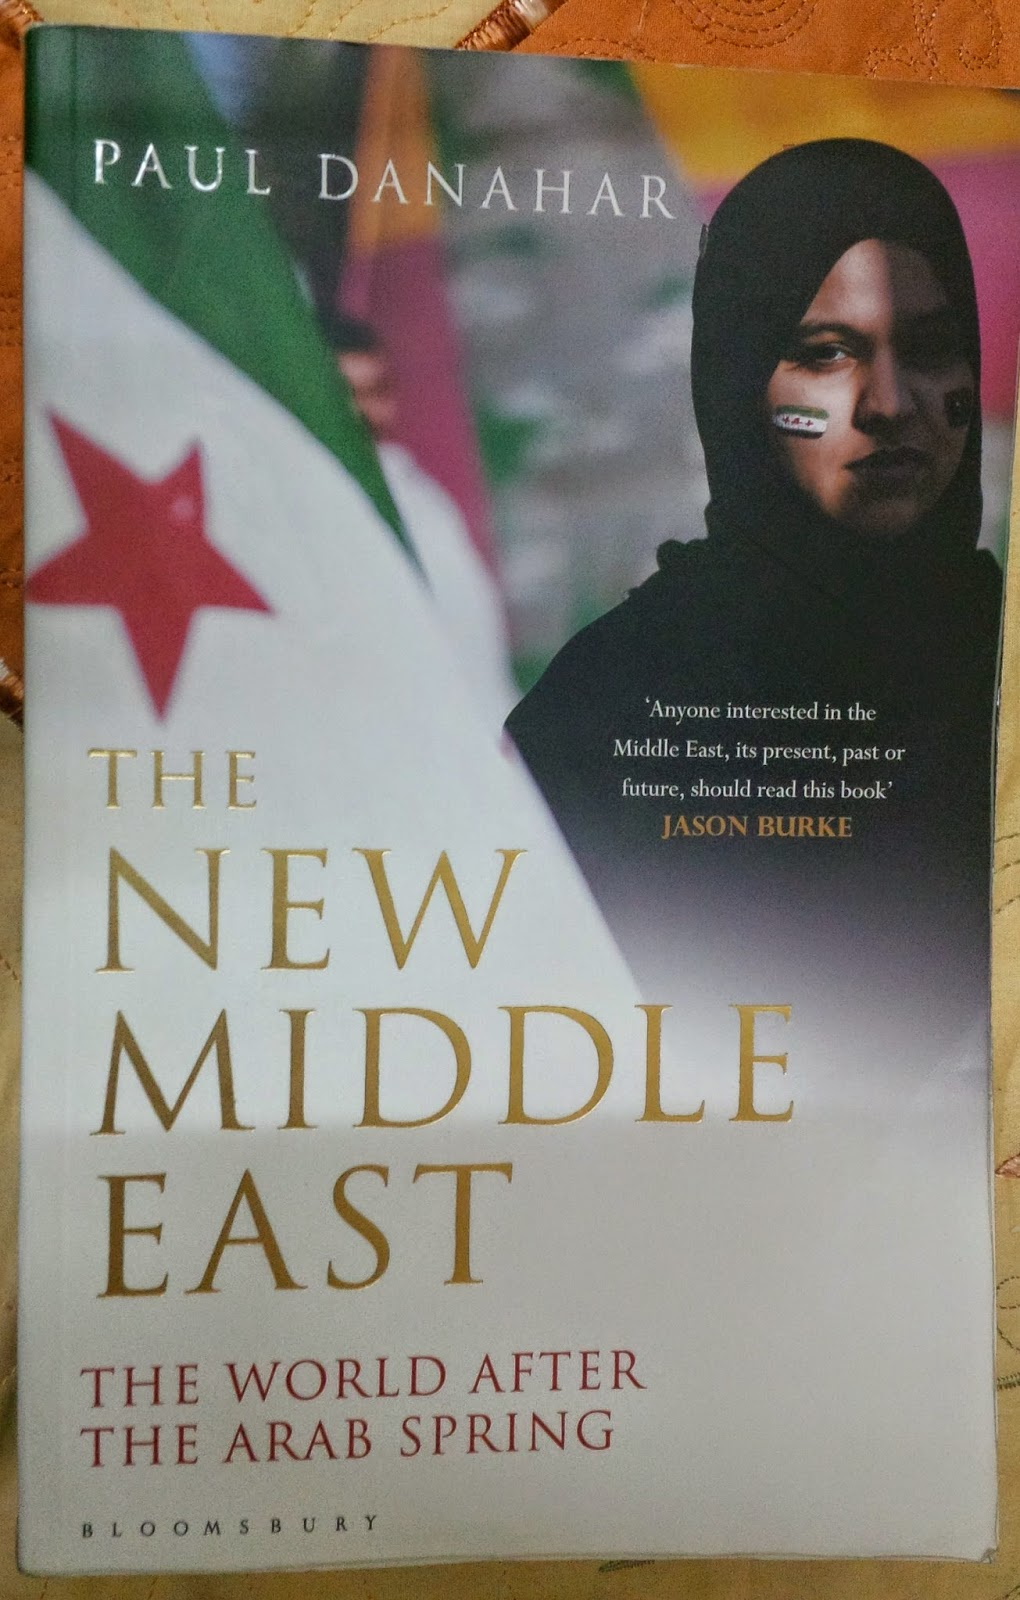 Paul Danahar - The New Middle East book review